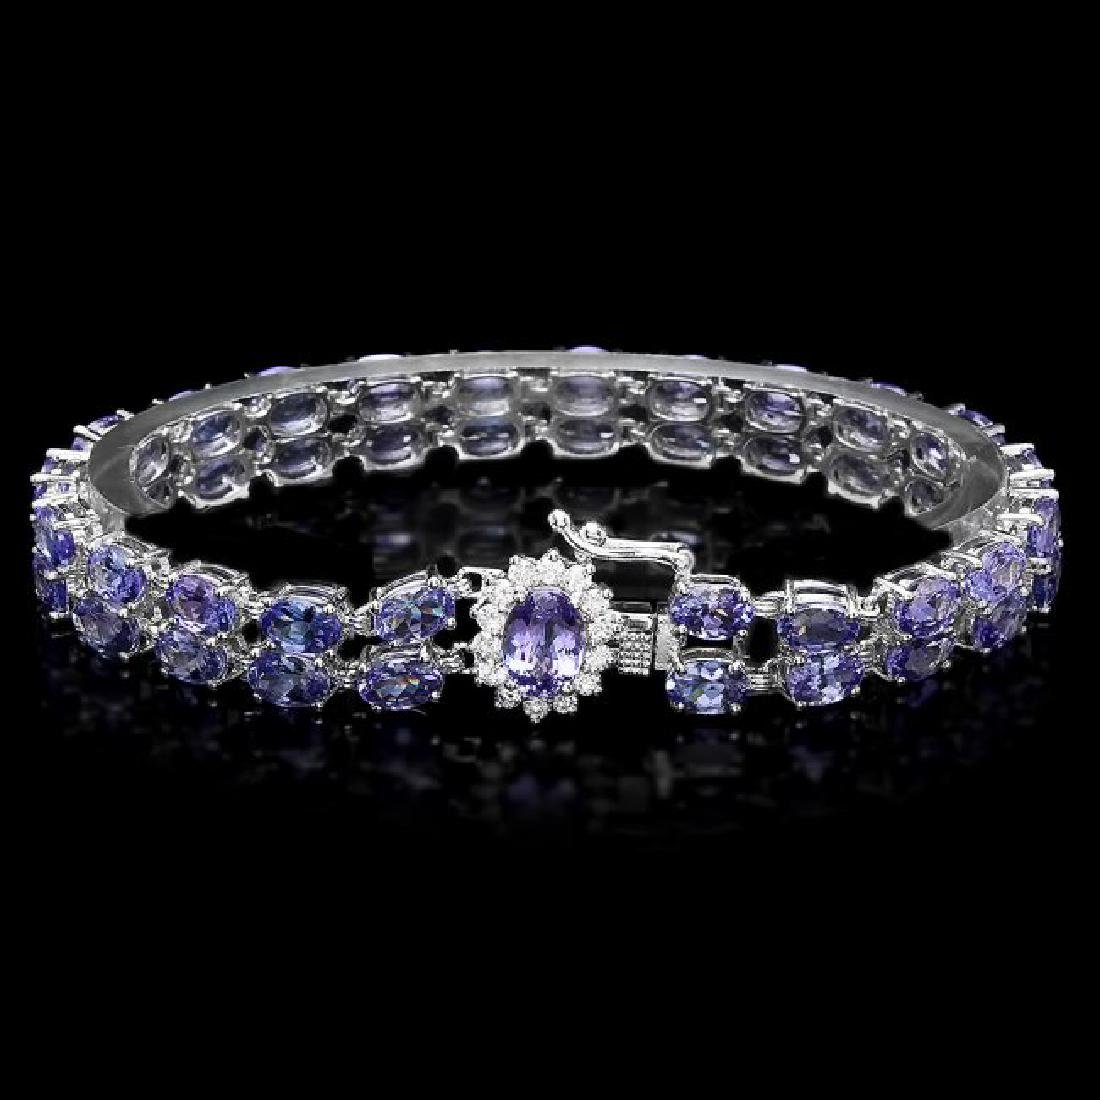 14k 22.35ct Tanzanite 0.45ct Diamond Bracelet - 2